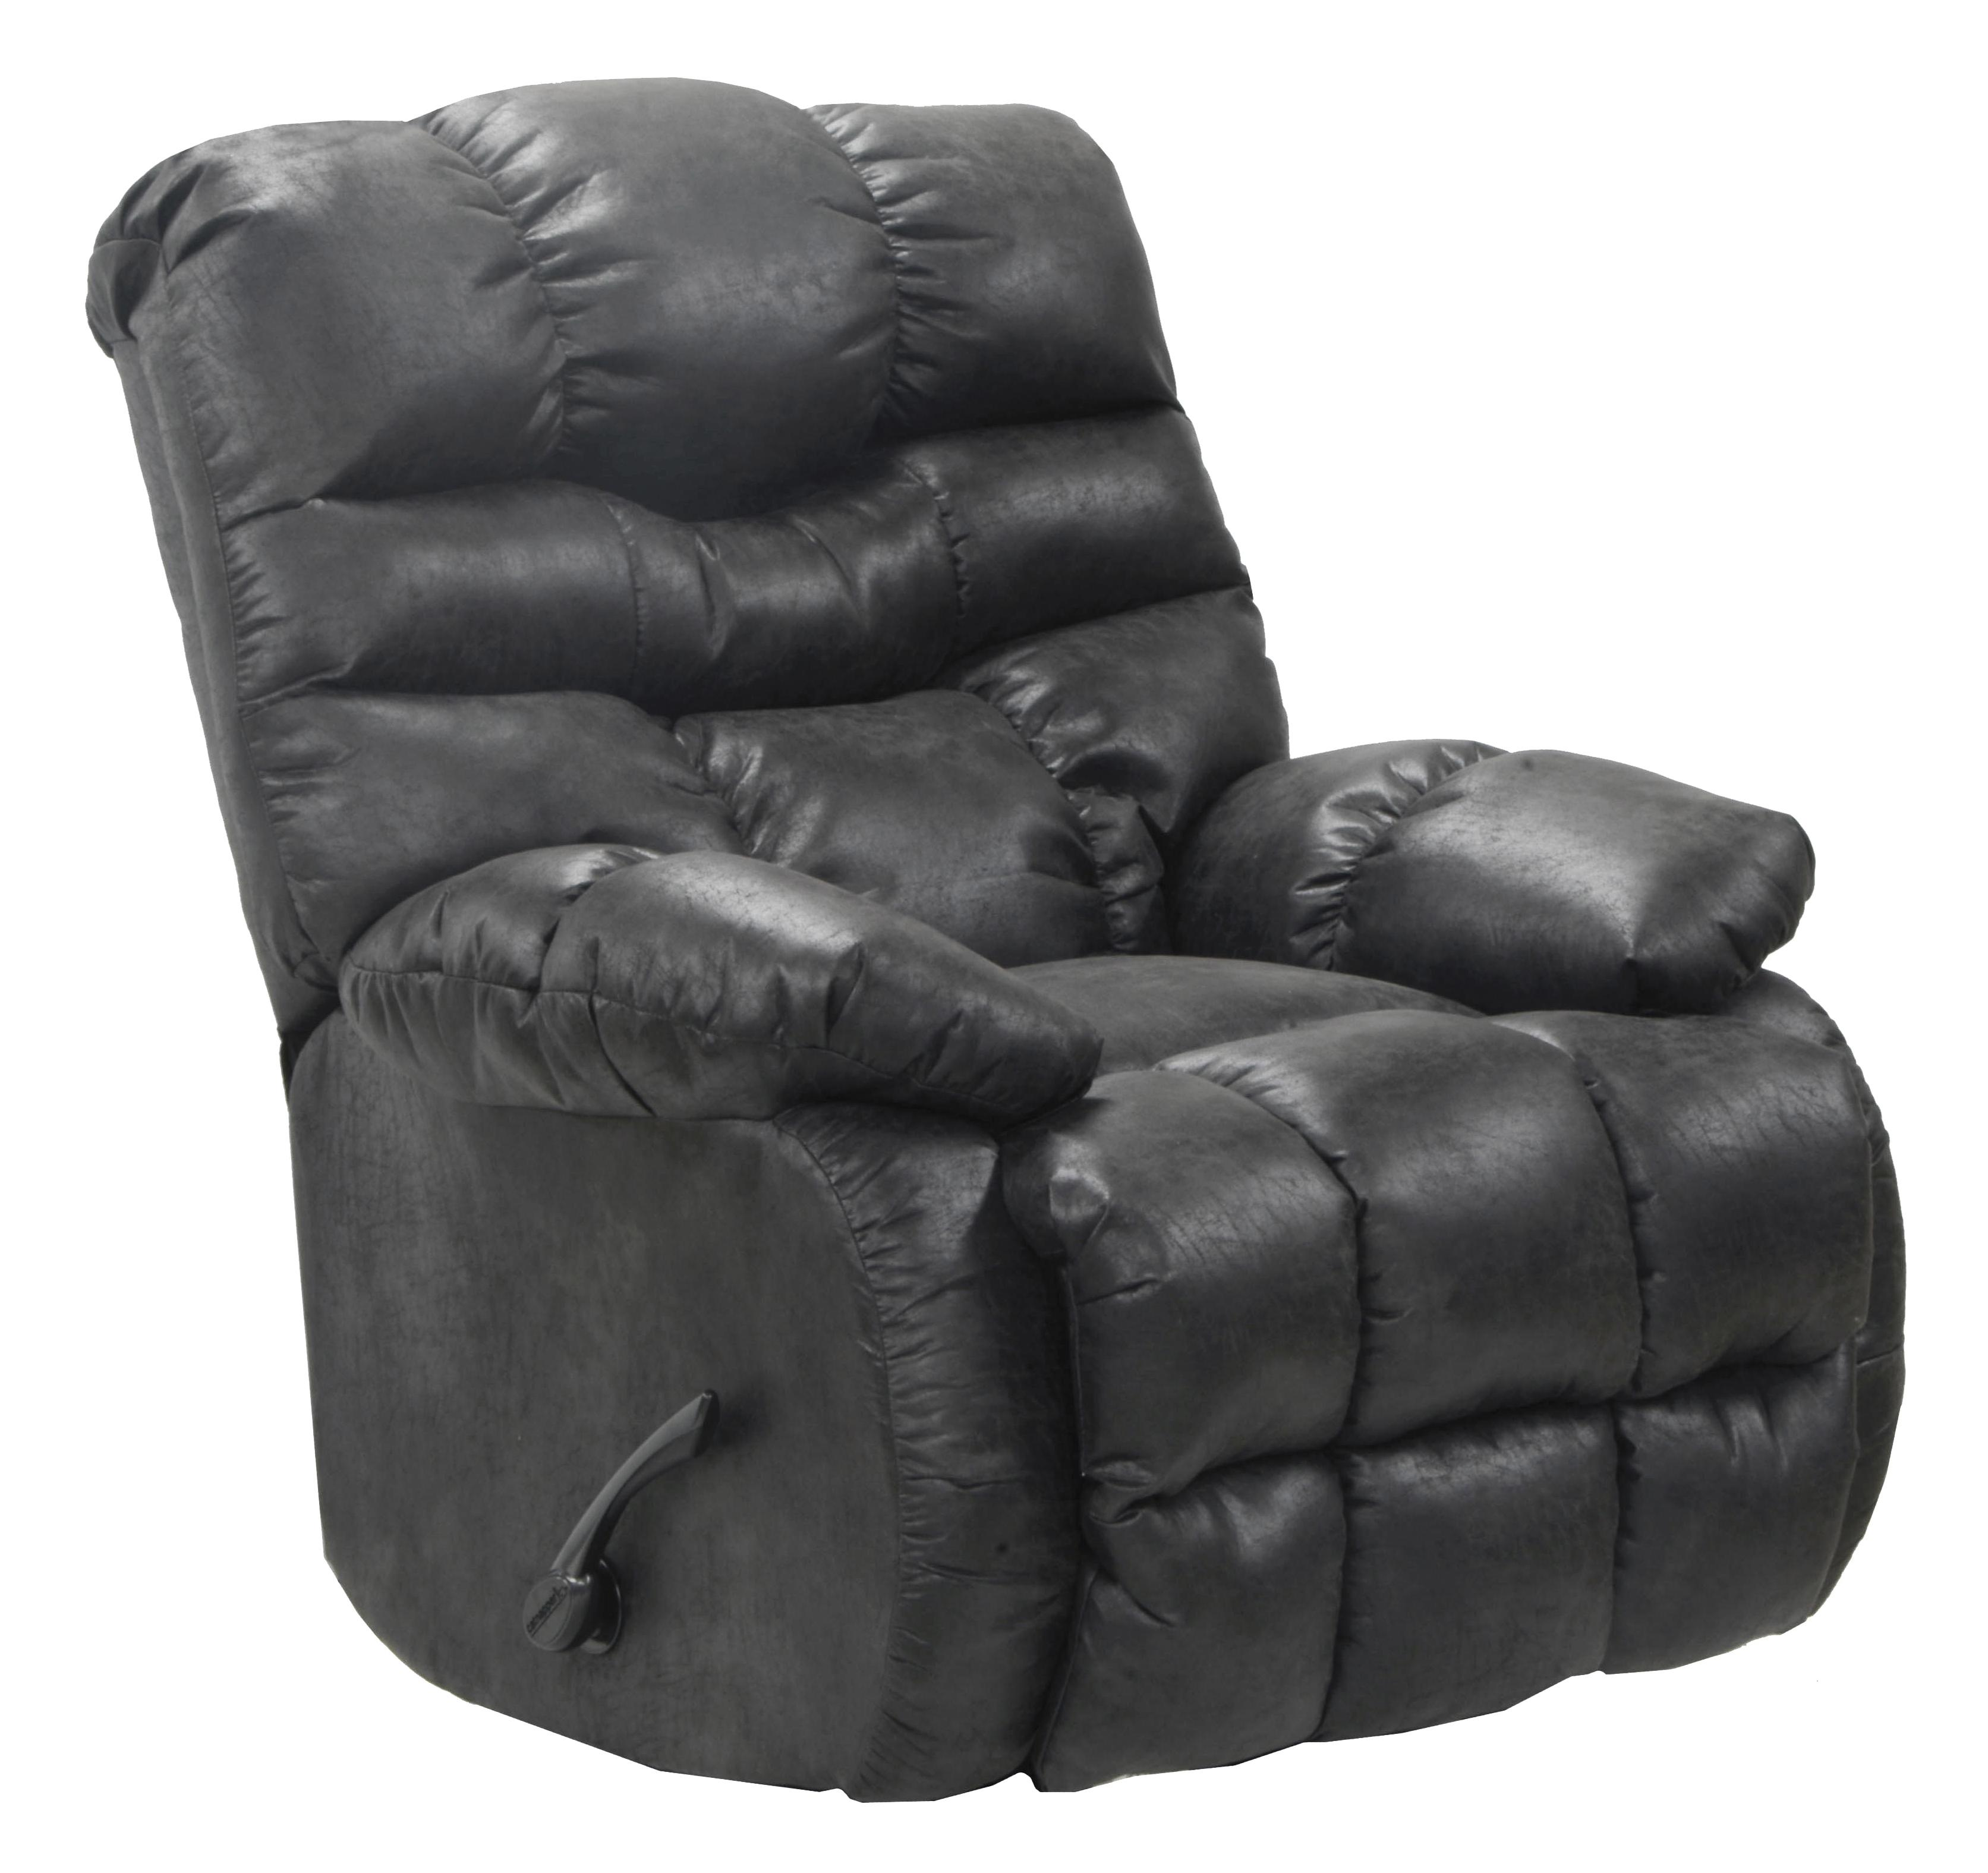 Catnapper Motion Chairs and Recliners Berman Rocker Recliner - Item Number: 4738-2-1240-09